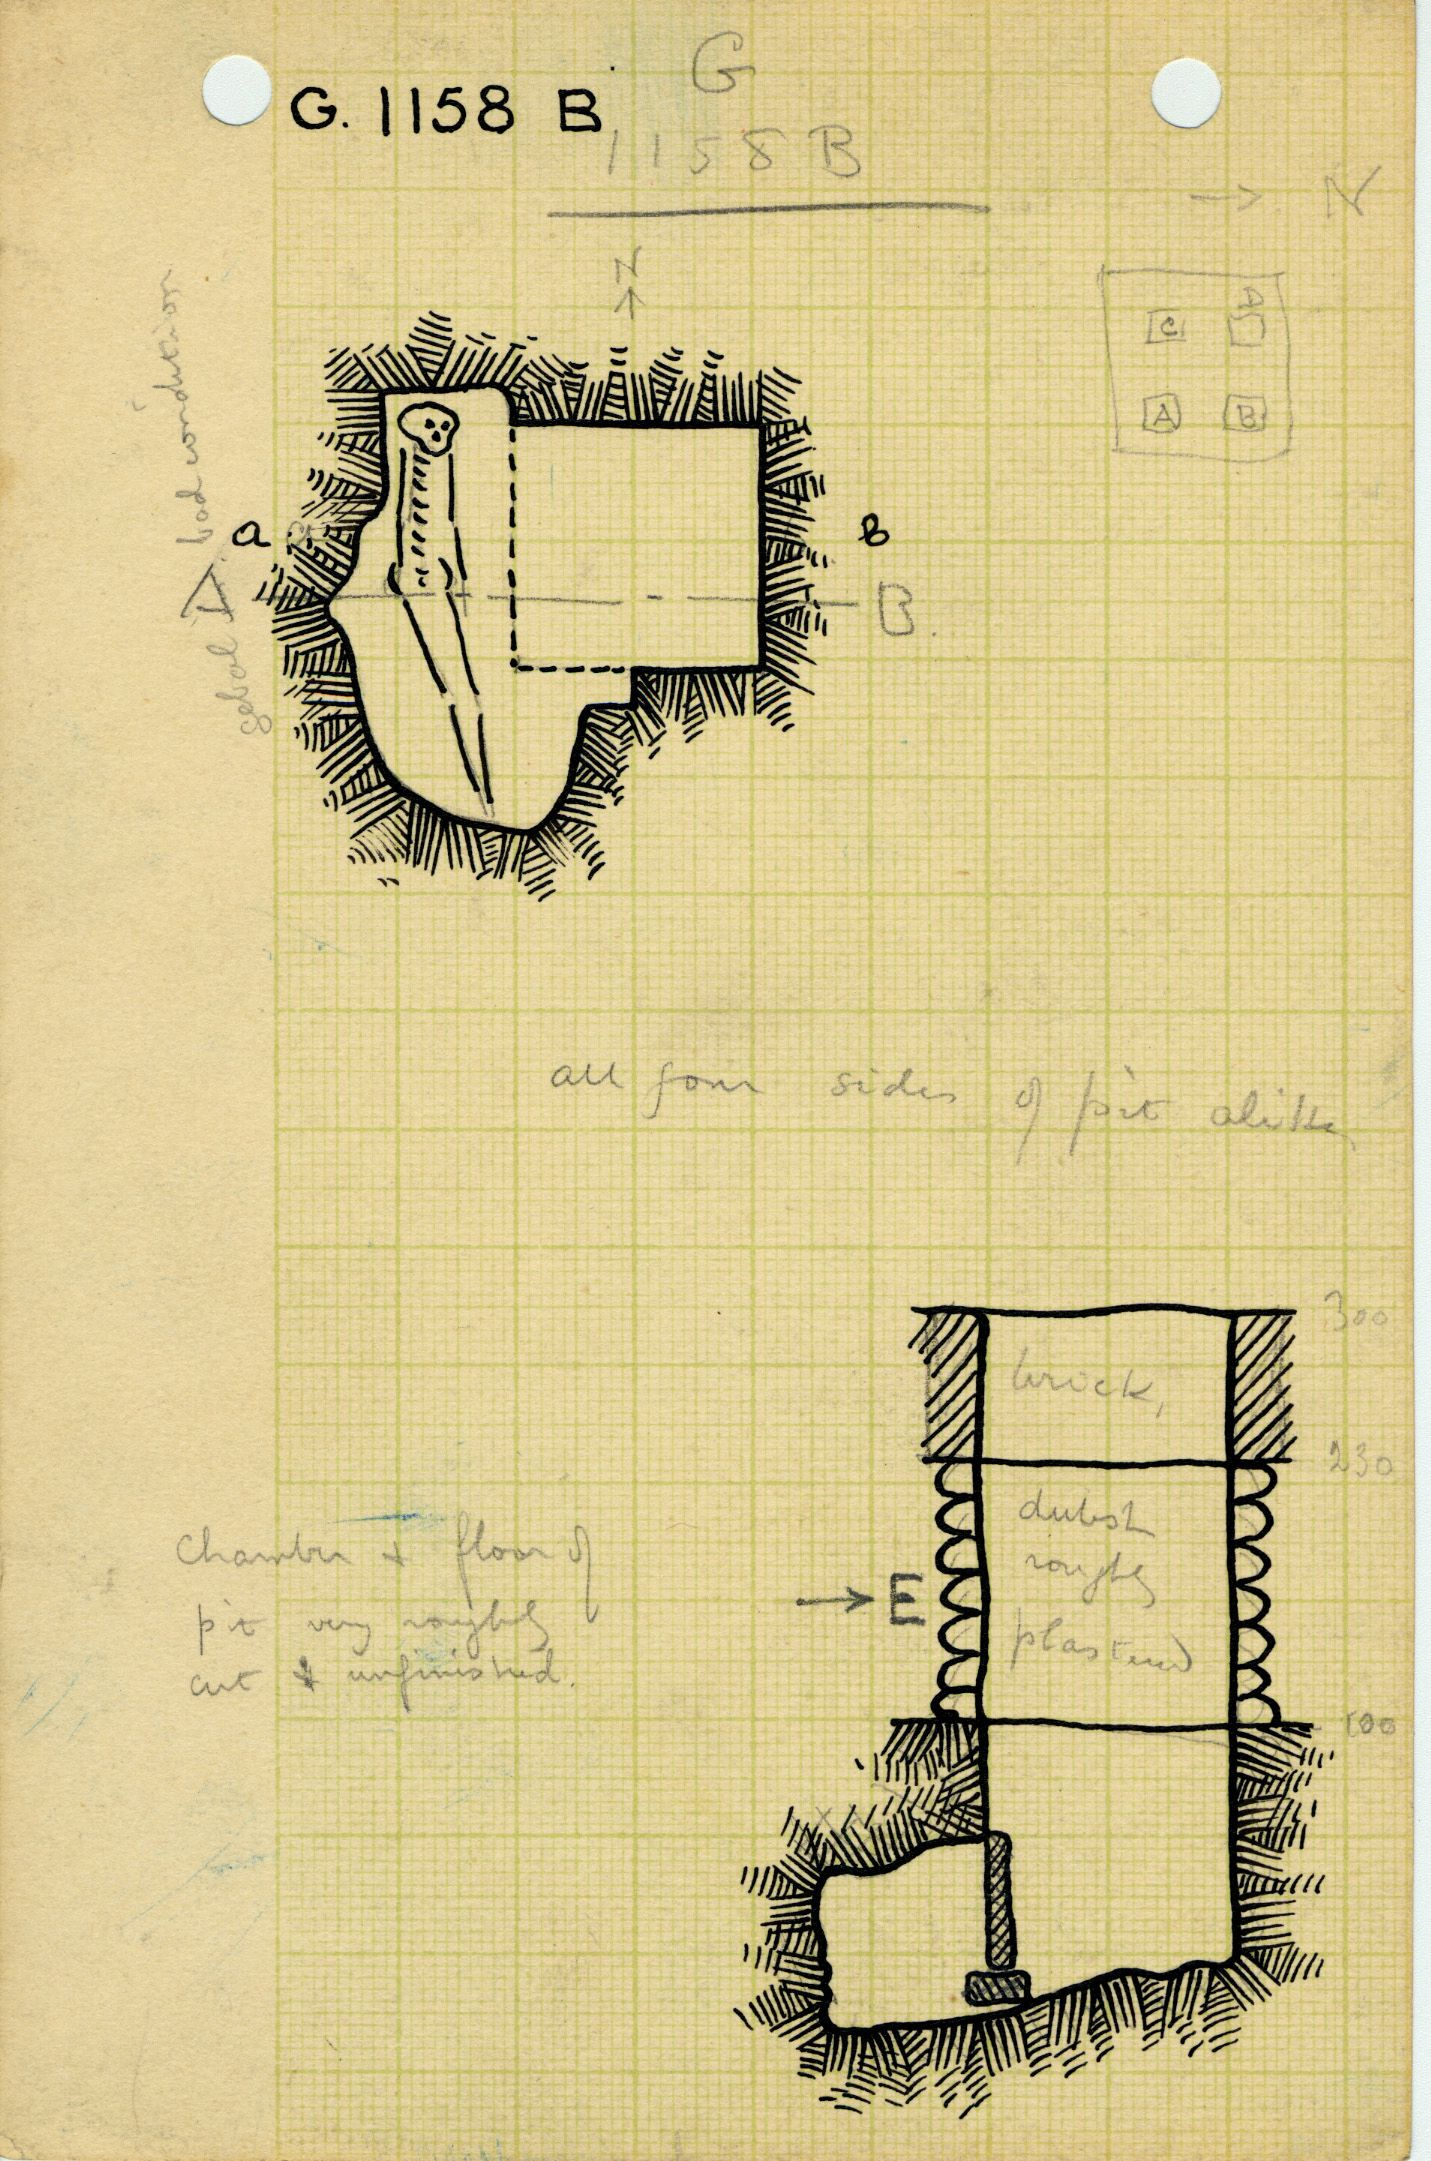 Maps and plans: G 1158, Shaft B